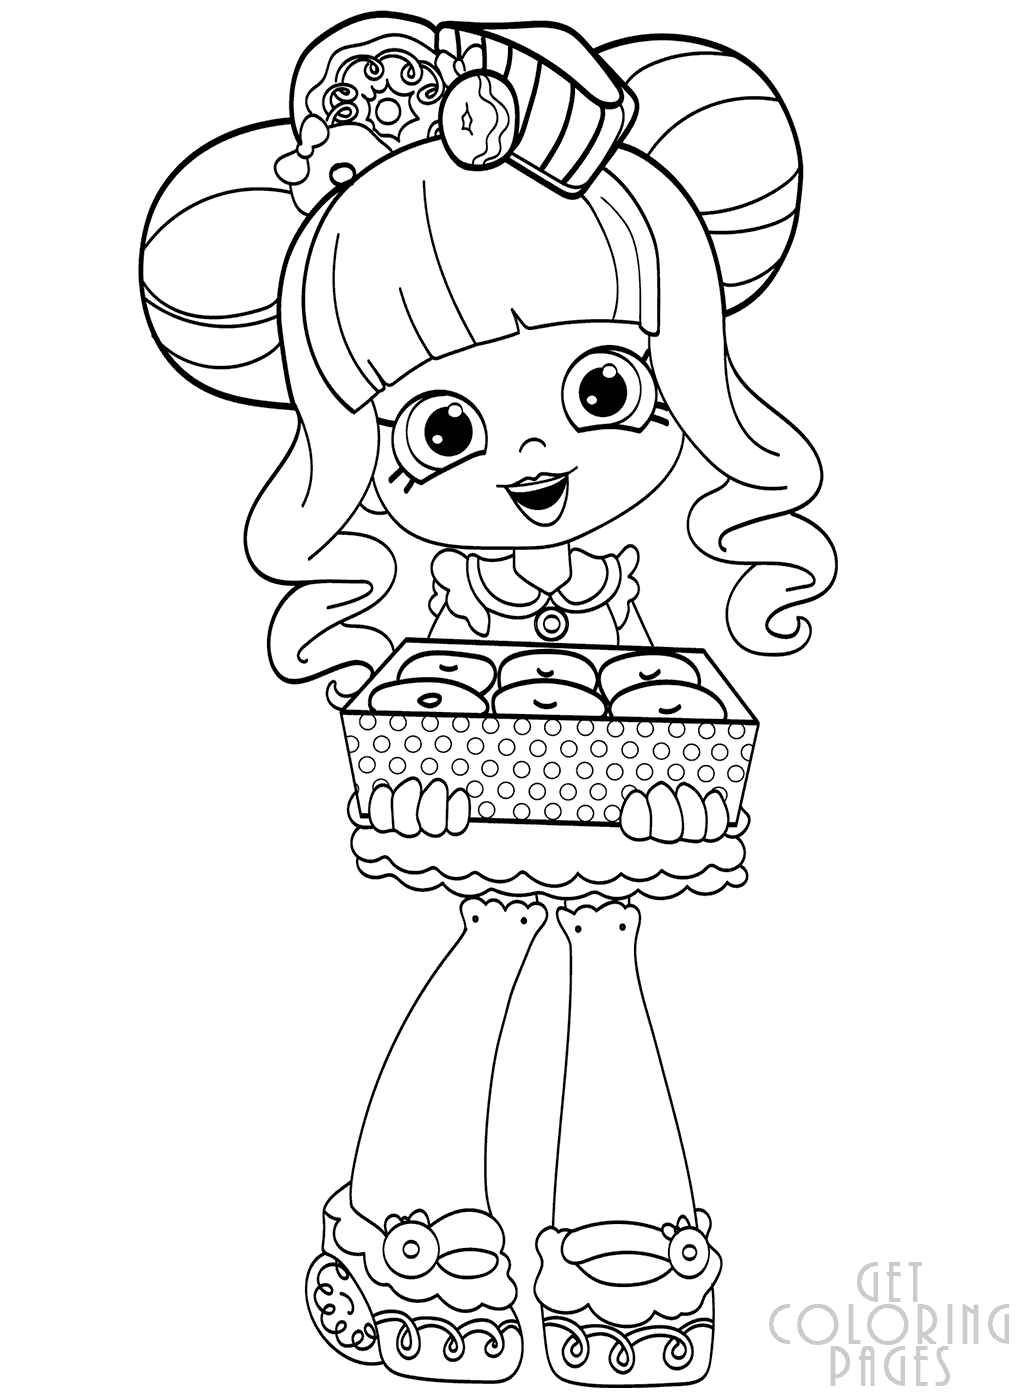 Donatina | Shopkins colouring pages, Cute coloring pages ...